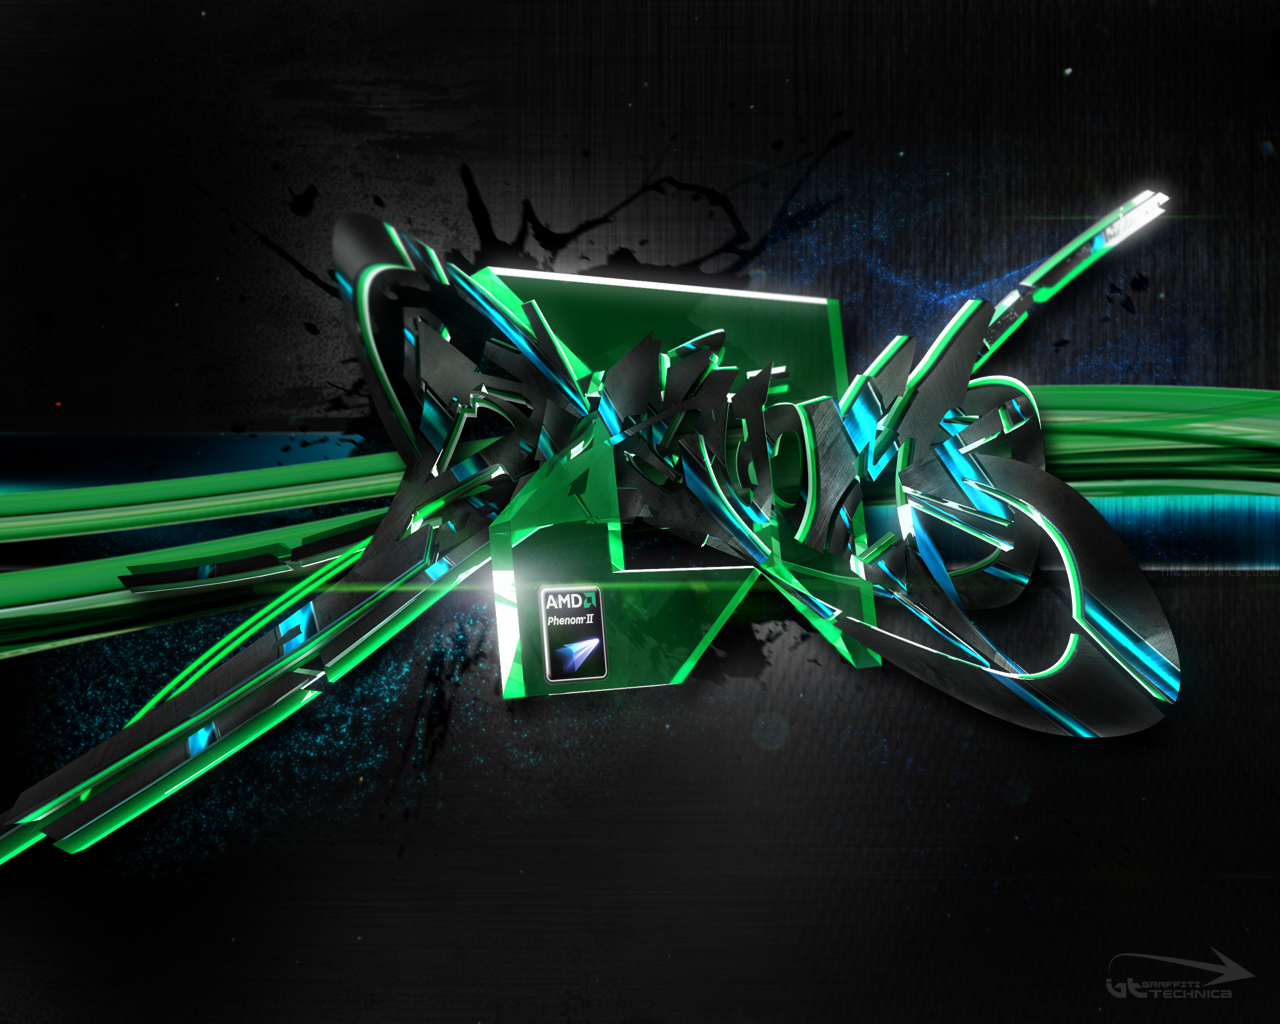 amd fx background by - photo #27